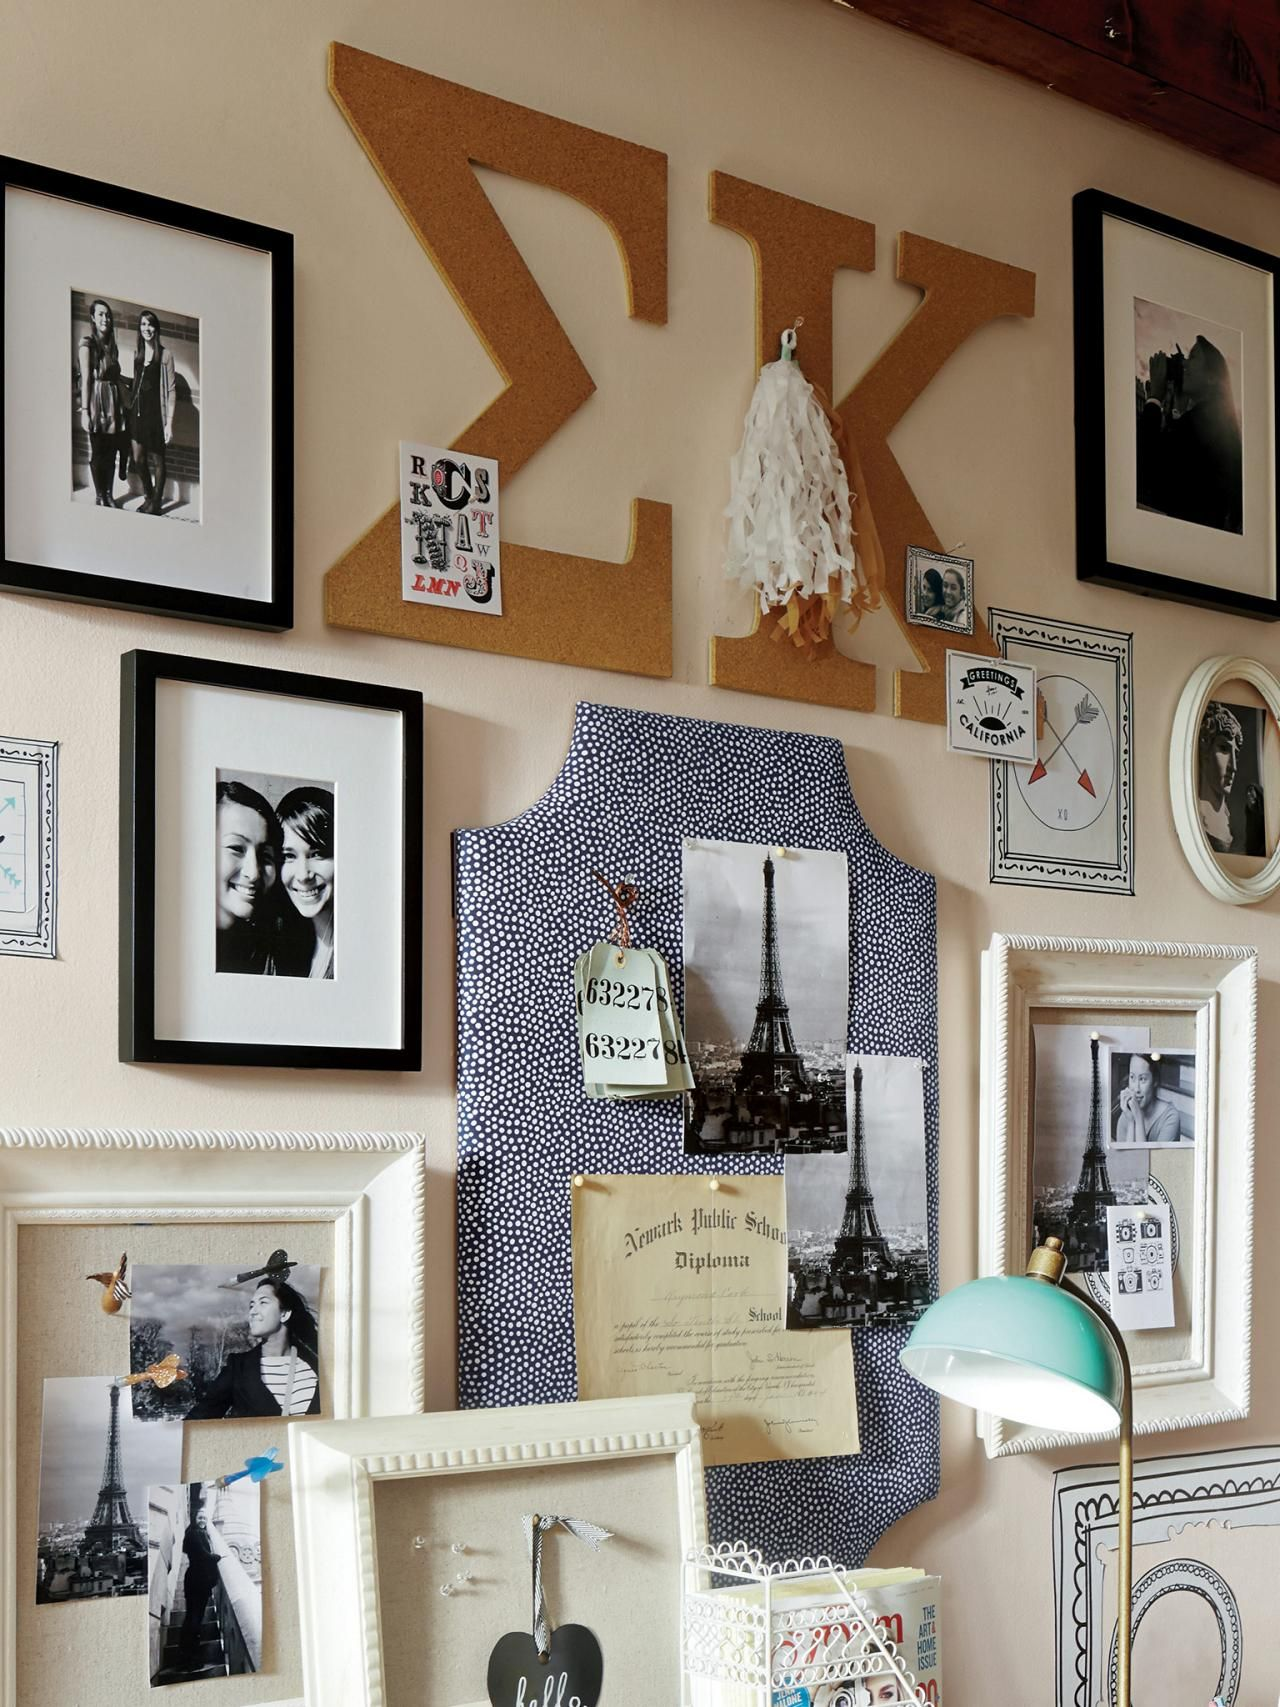 Dorm Room Wall Decor dorm room decorating ideas & decor essentials | sorority letters